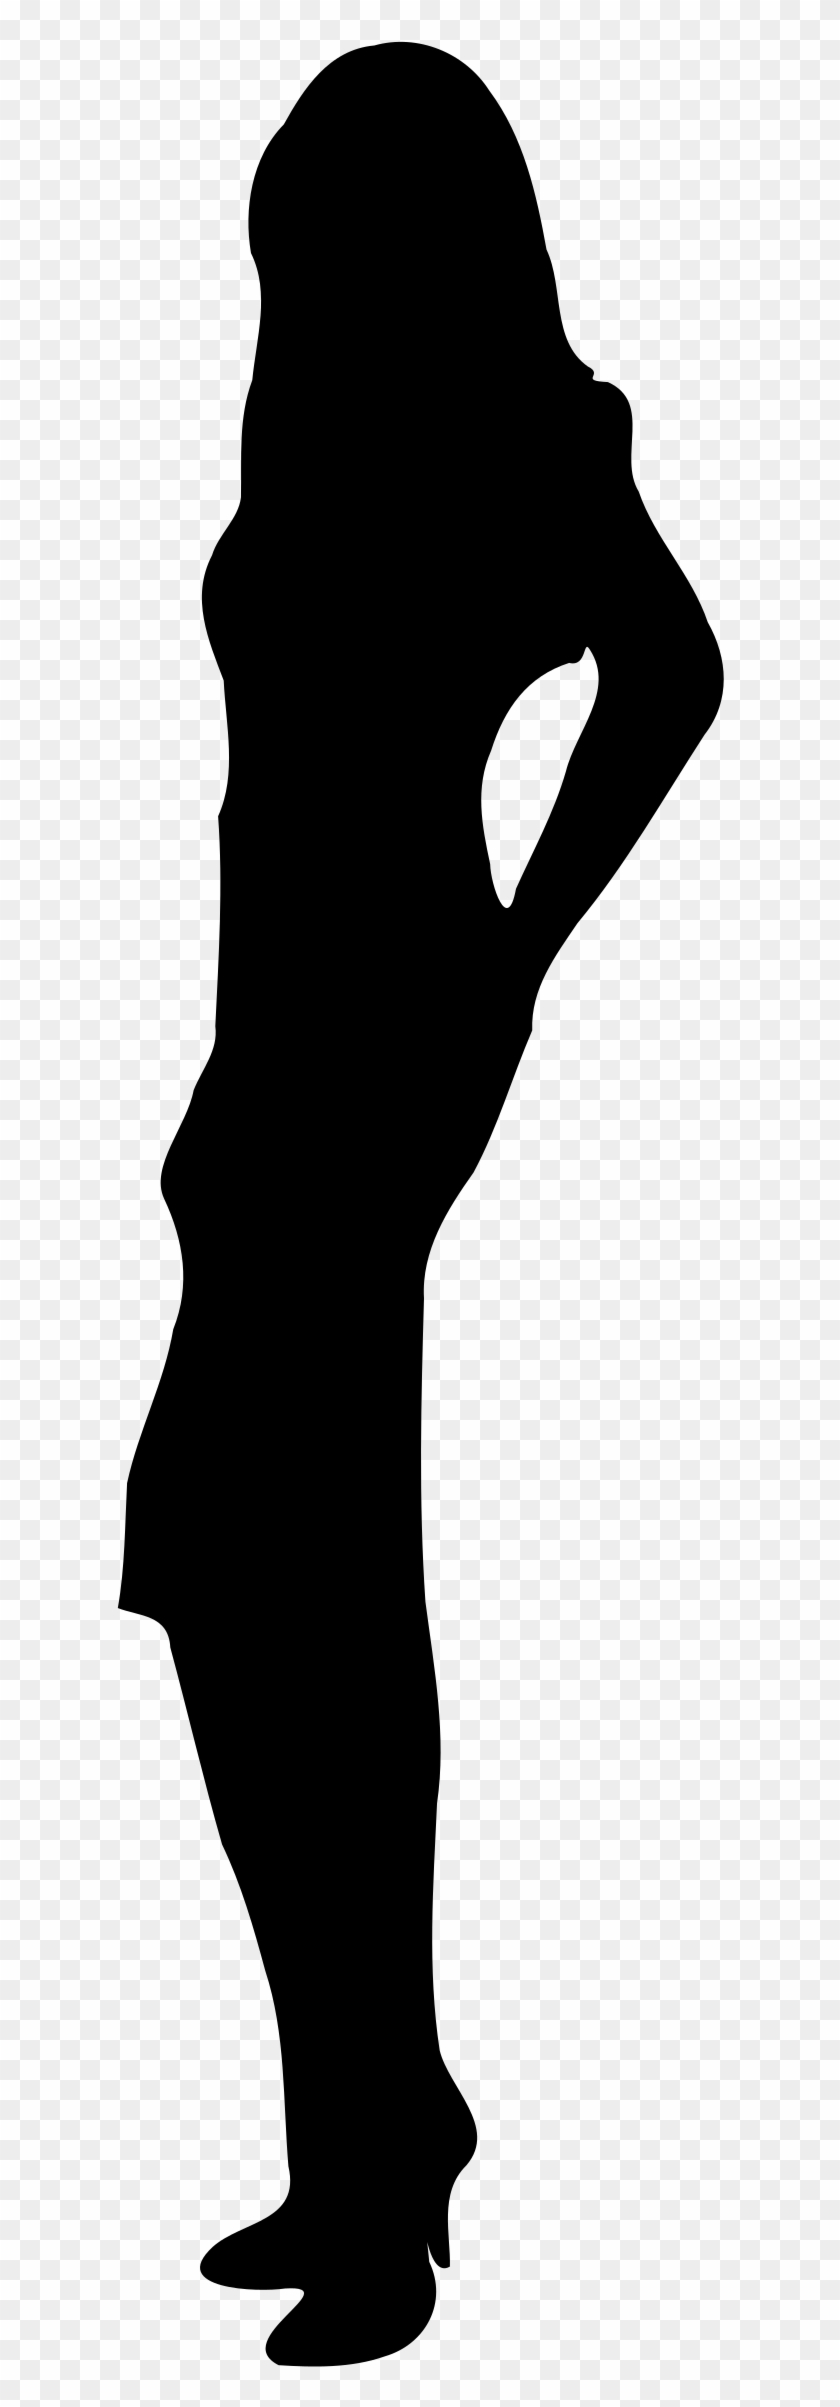 Silhouette Of A Person Clipart - Woman Full Body Silhouette #86314